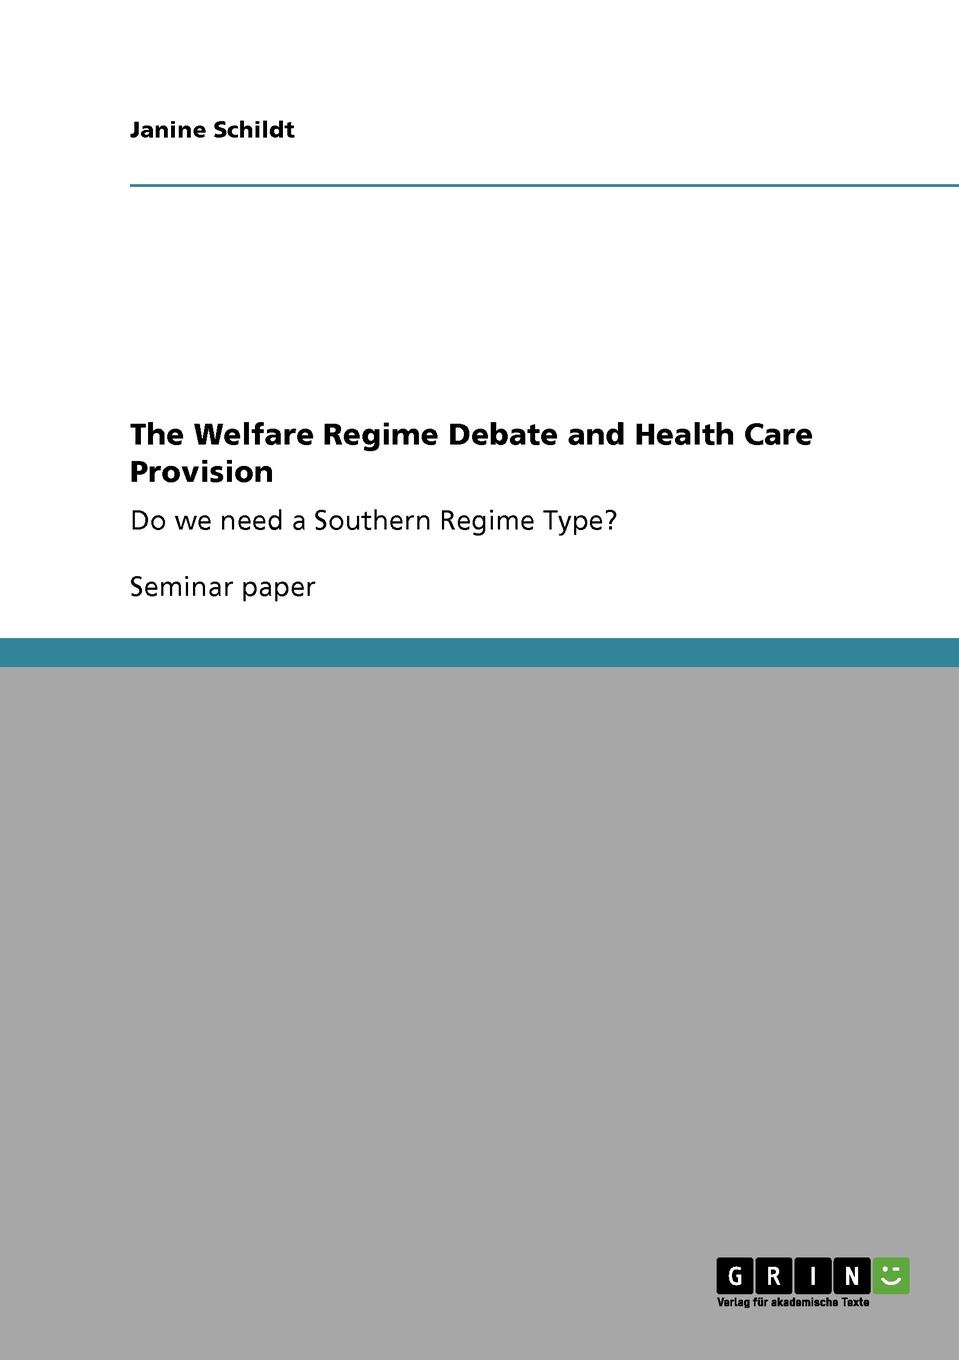 Janine Schildt The Welfare Regime Debate and Health Care Provision gender and the welfare state